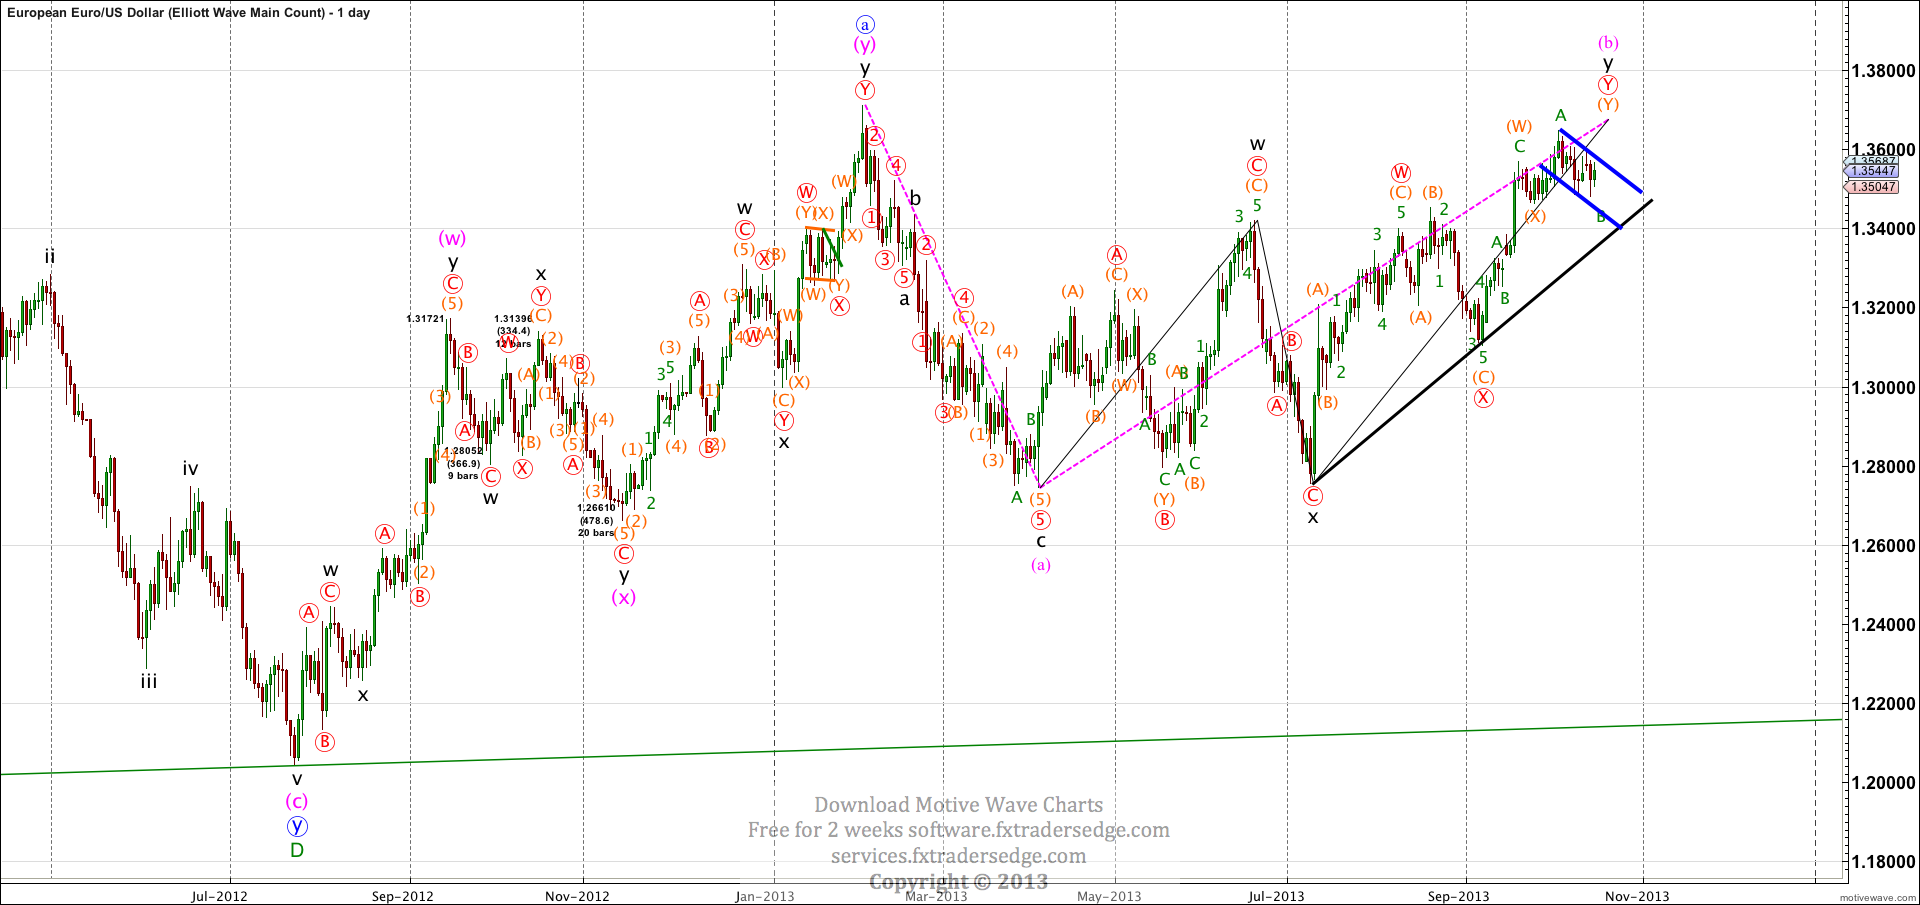 EURUSD-Elliott-Wave-Main-Count-Oct-16-0834-AM-1-day